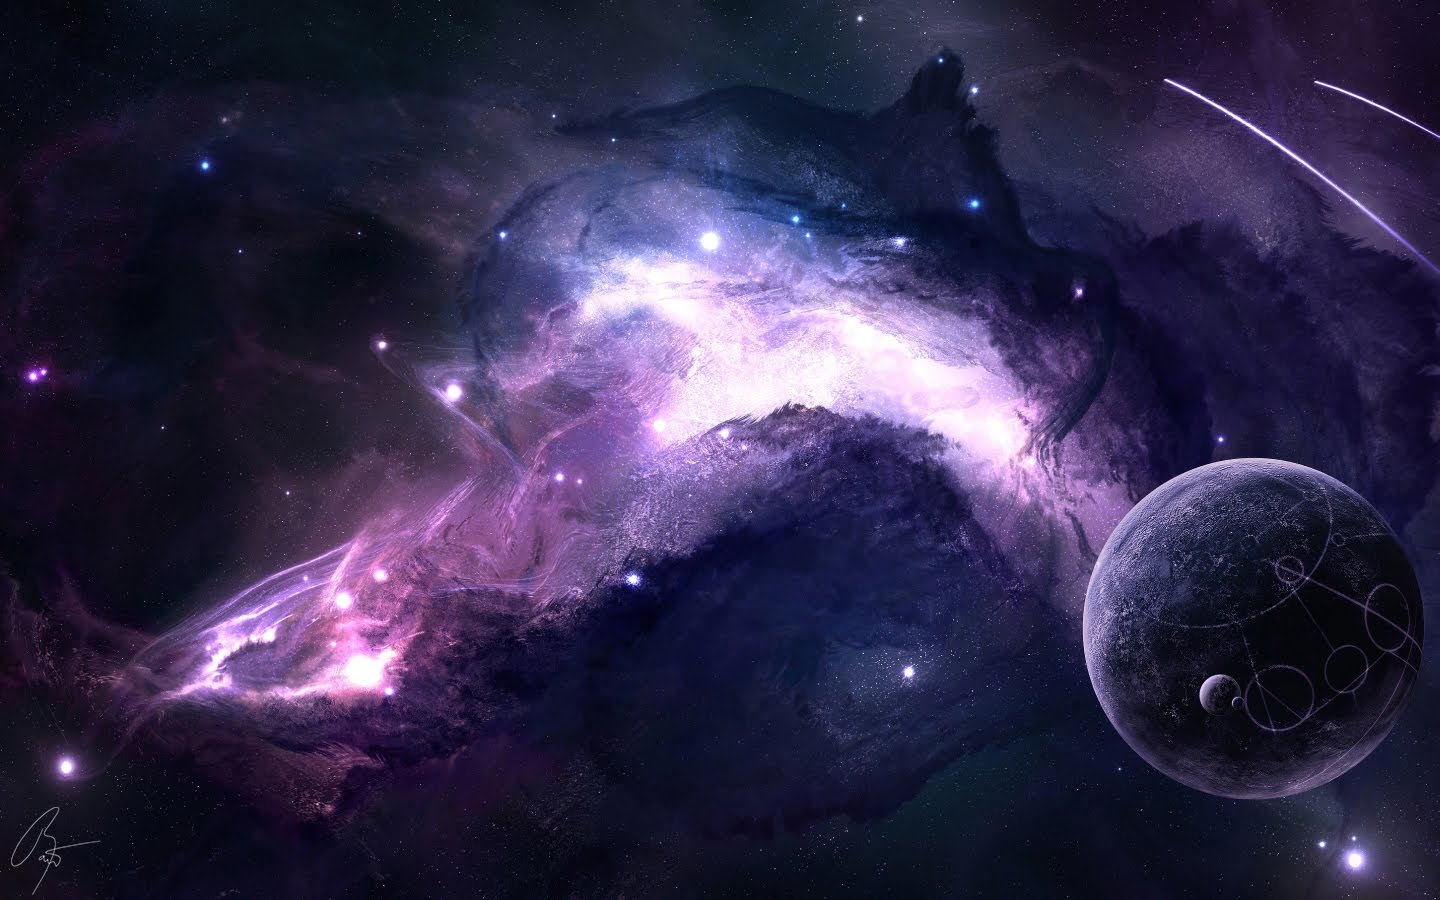 Hd Wallpaper Space